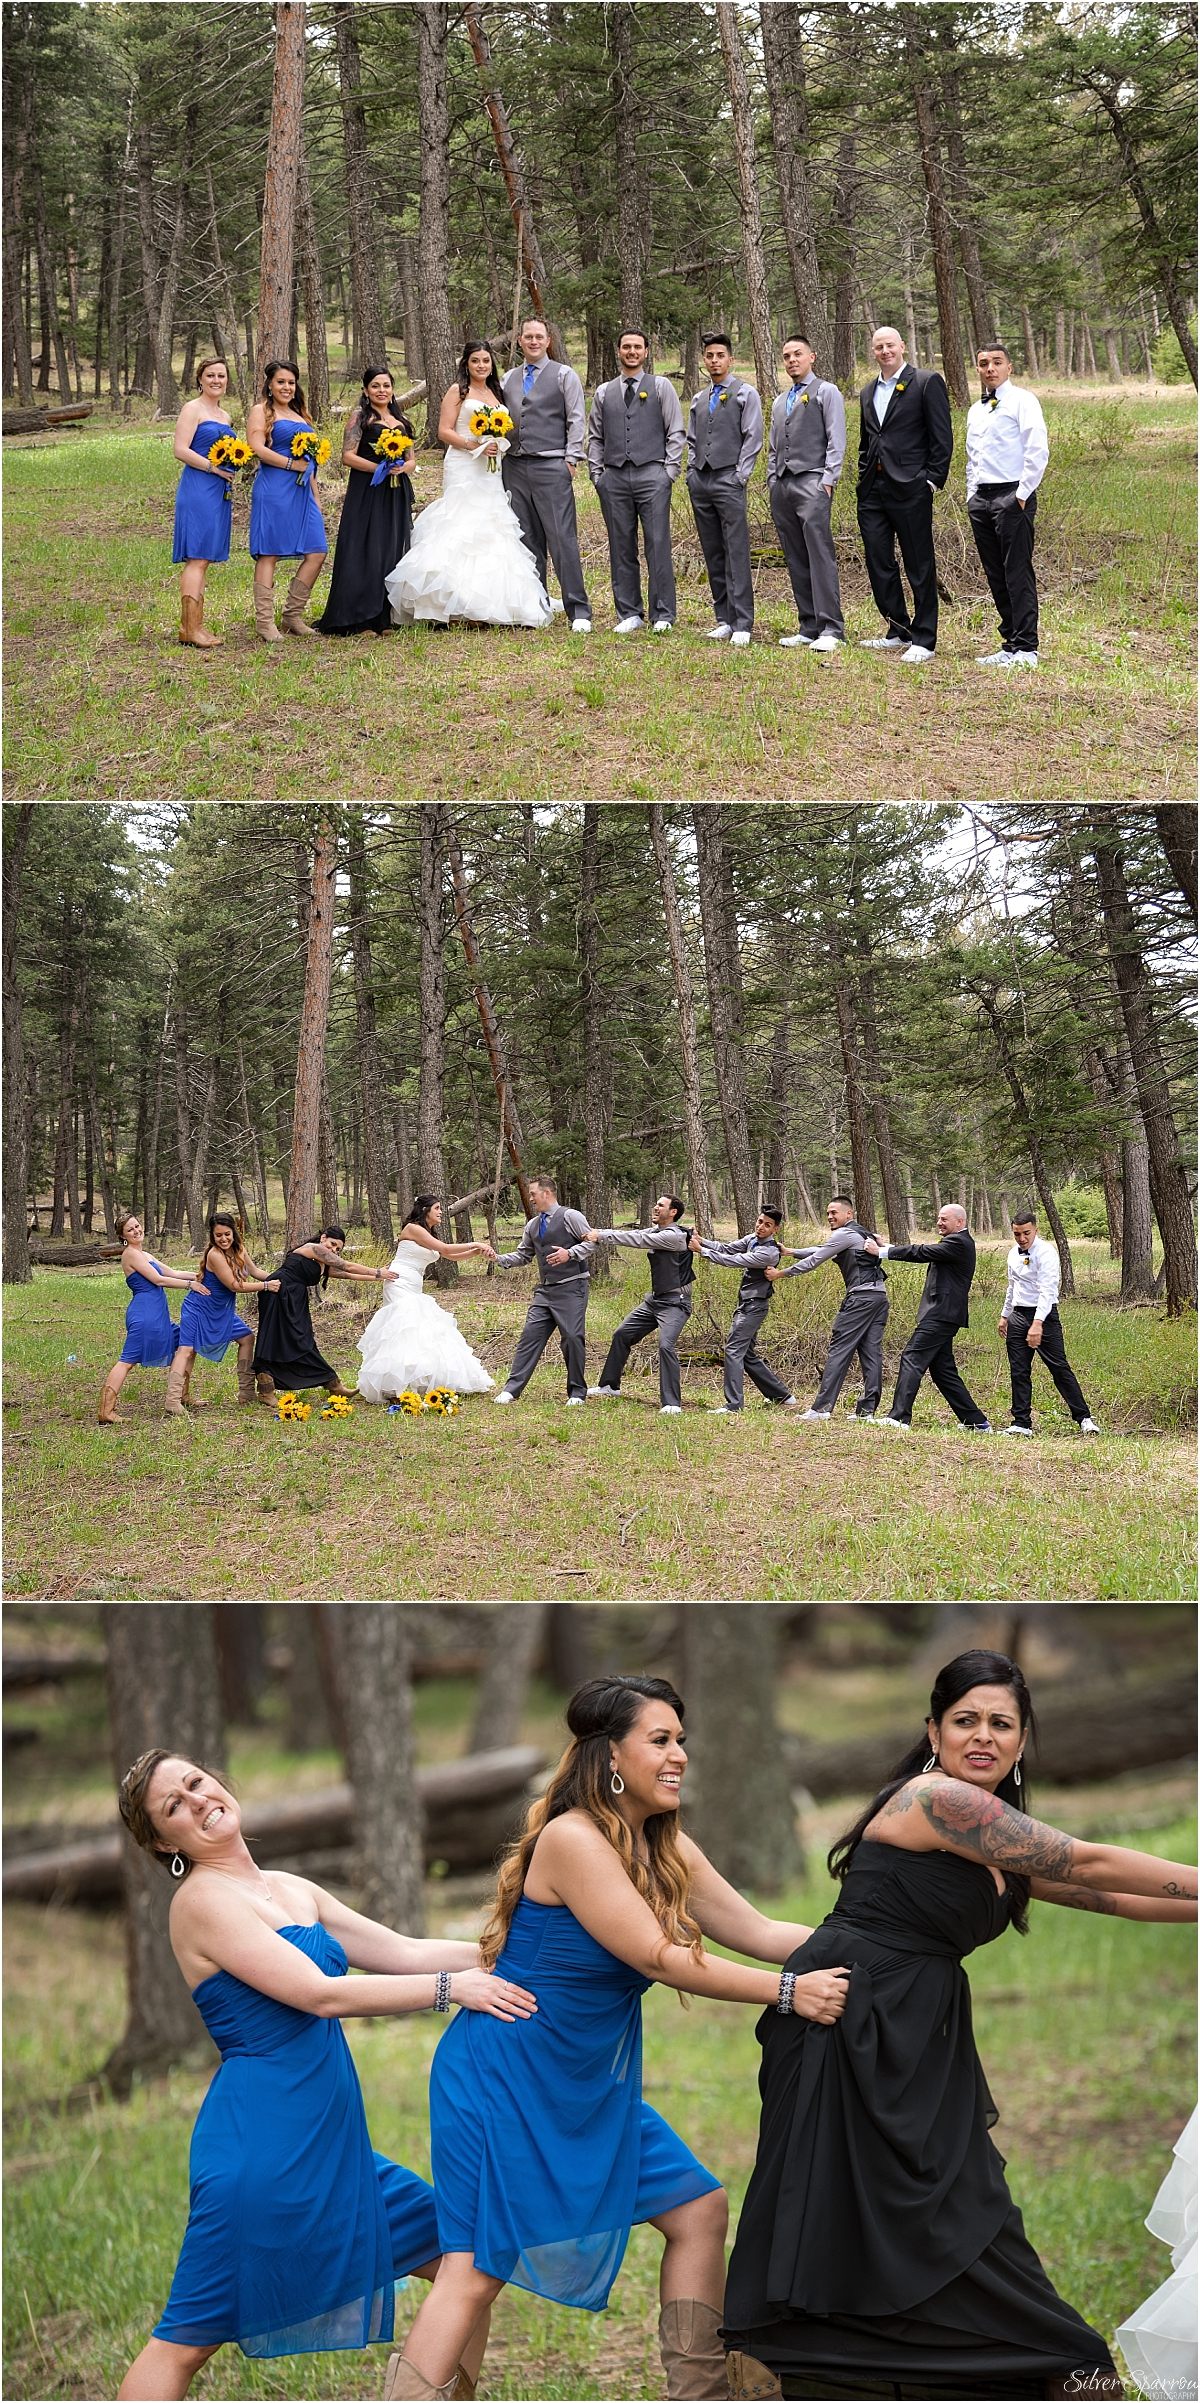 Denver Wedding Photographer - Silver Sparrow Photography